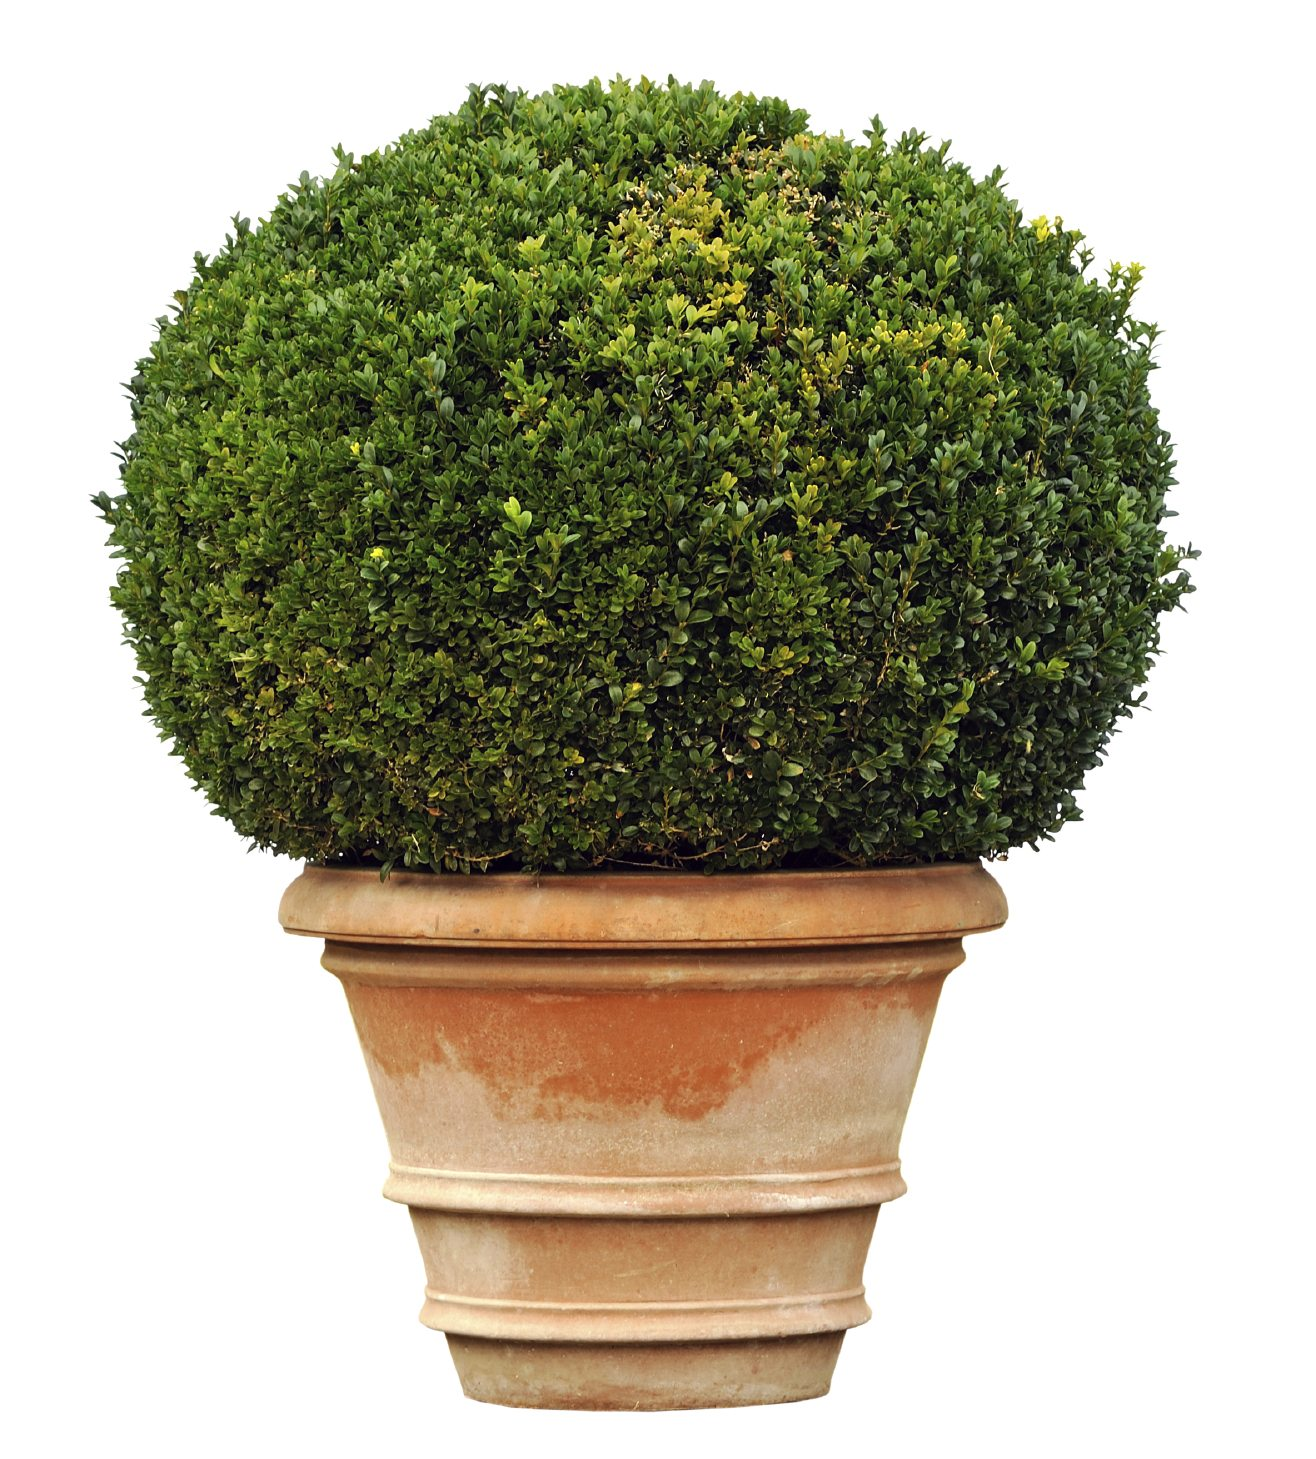 Can Boxwoods Be Planted In Pots Tips On Growing Boxwood Shrubs In Containers